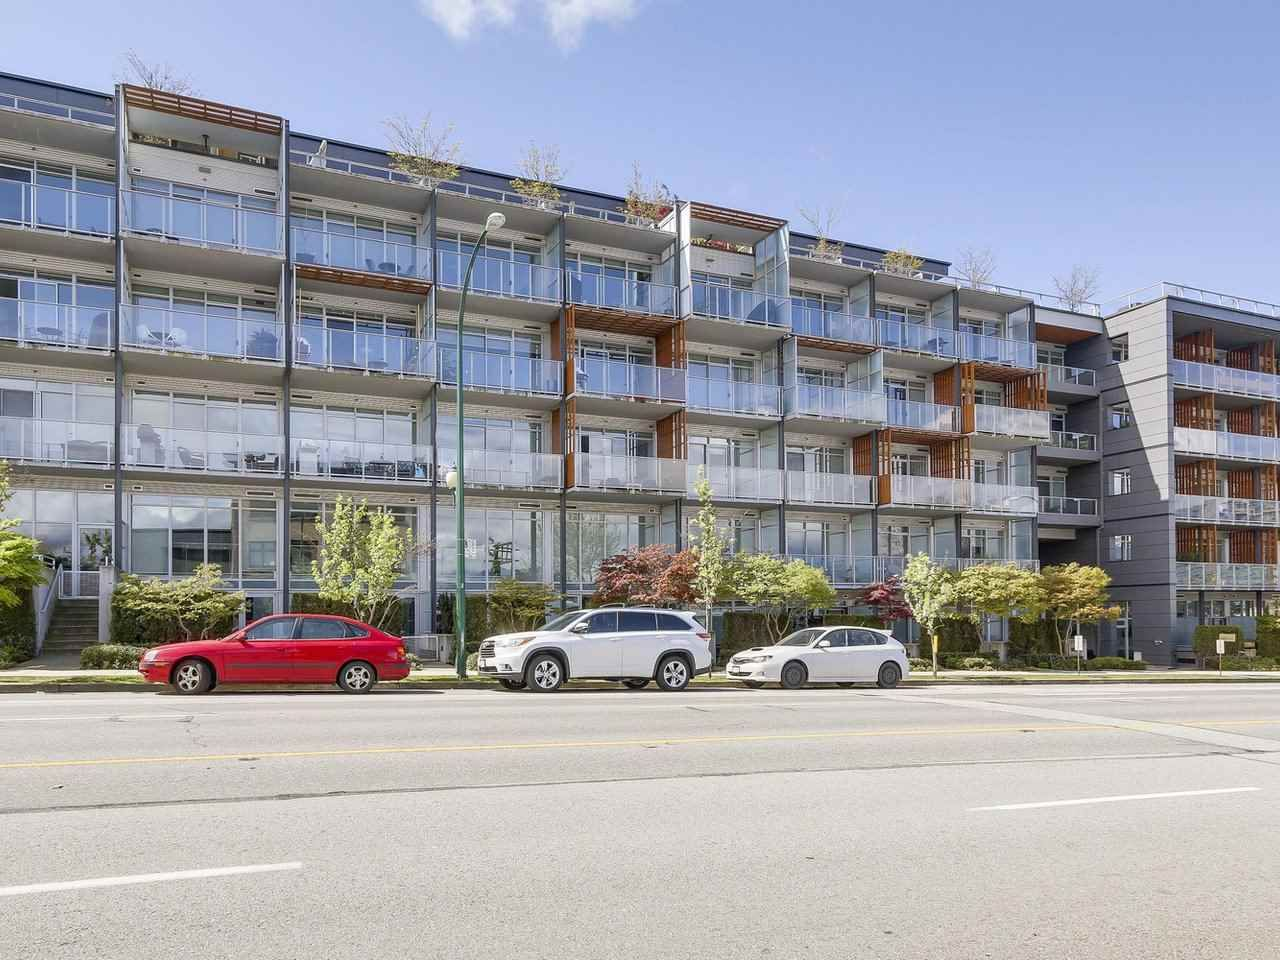 """Main Photo: 522 256 E 2ND Avenue in Vancouver: Mount Pleasant VE Condo for sale in """"JACOBSEN"""" (Vancouver East)  : MLS®# R2161219"""